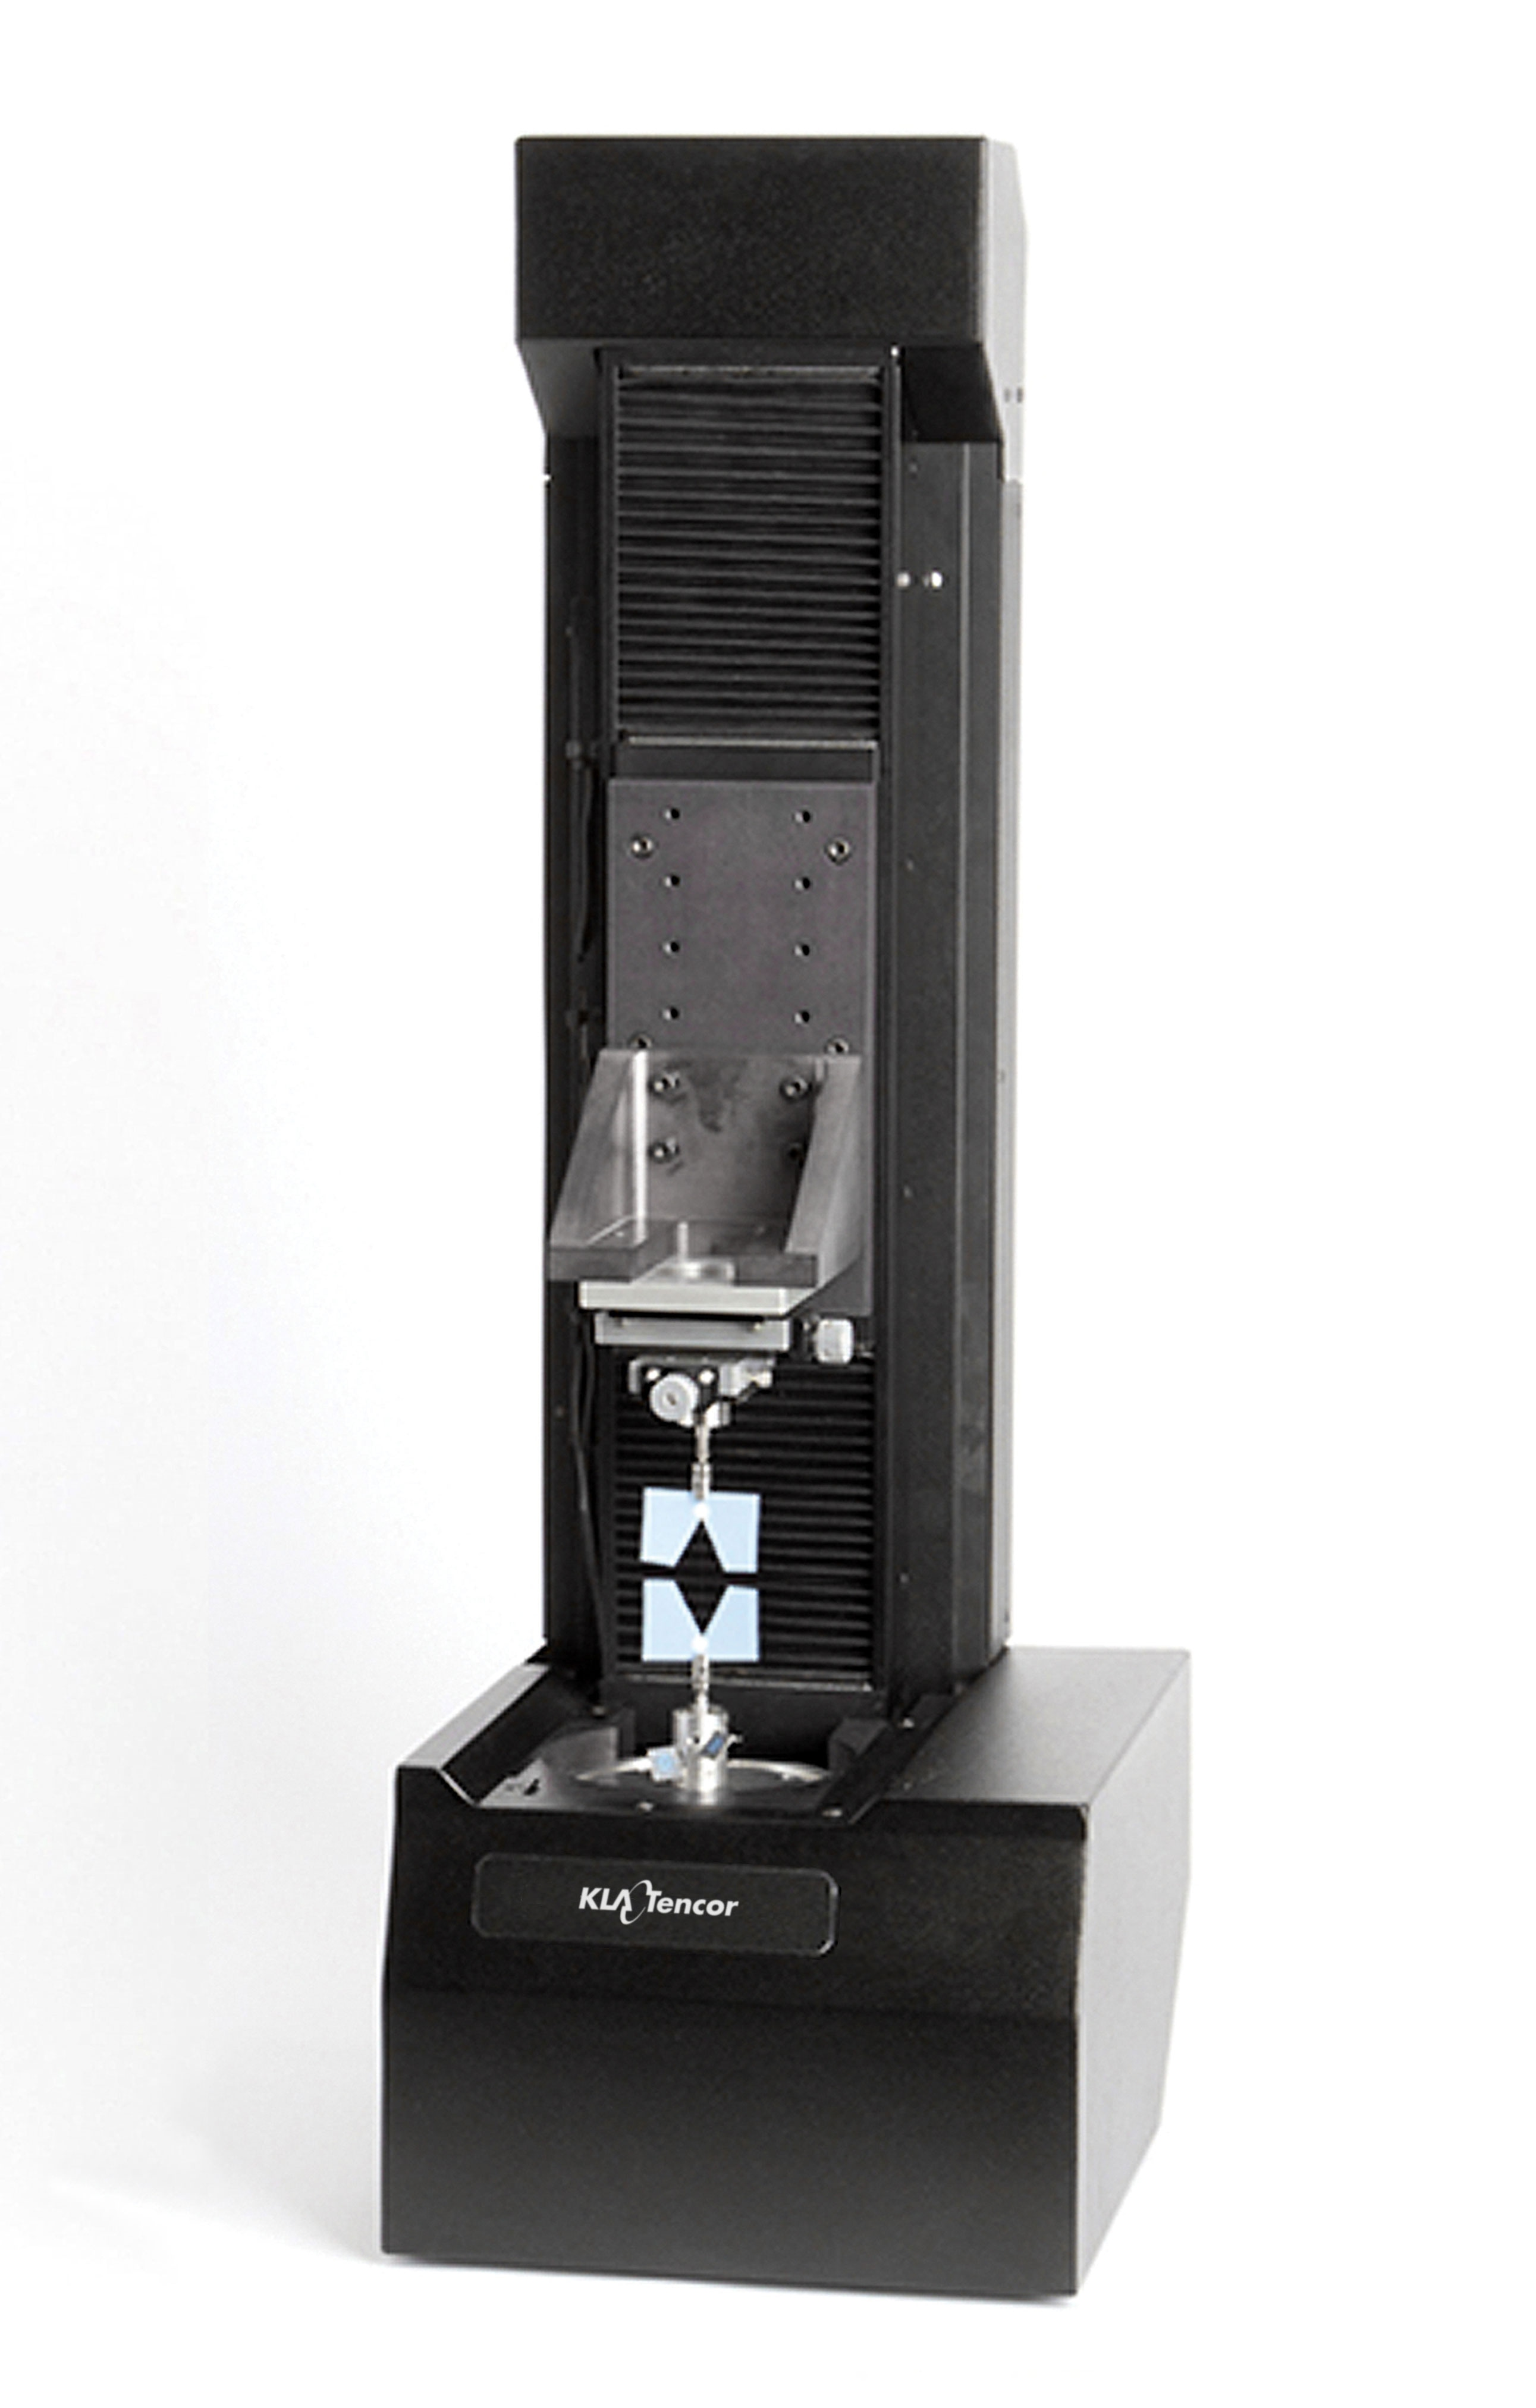 Nanomechanical Testing Machine/Nanoindenter - T150 from Agilent Technologies